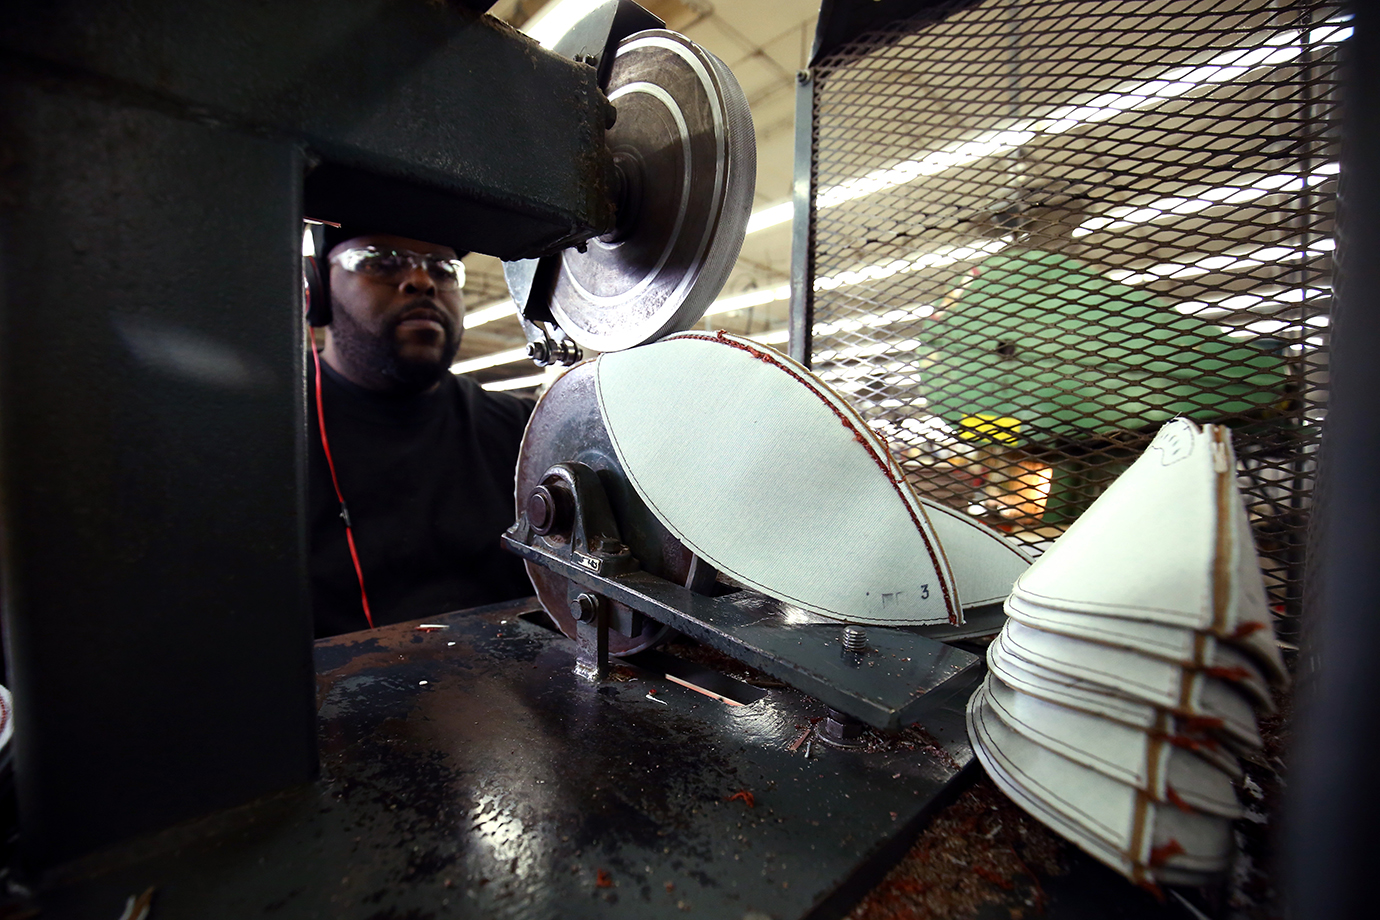 An employee of Wilson's Ada, Ohio factory sews panels of the Super Bowl balls together.